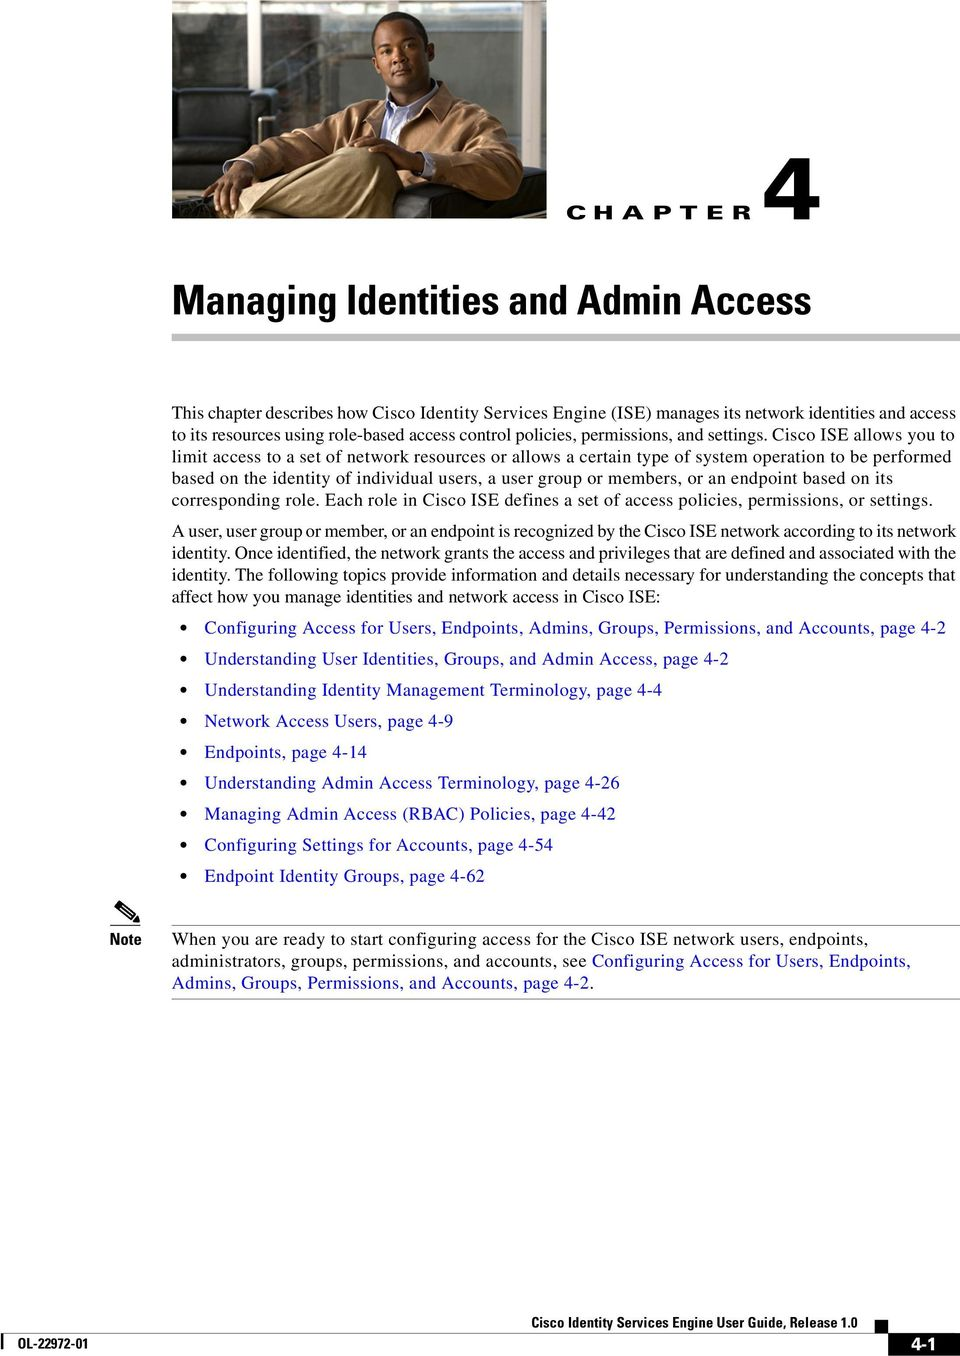 Cisco ISE allows you to limit access to a set of network resources or allows a certain type of system operation to be performed based on the identity of individual users, a user group or members, or